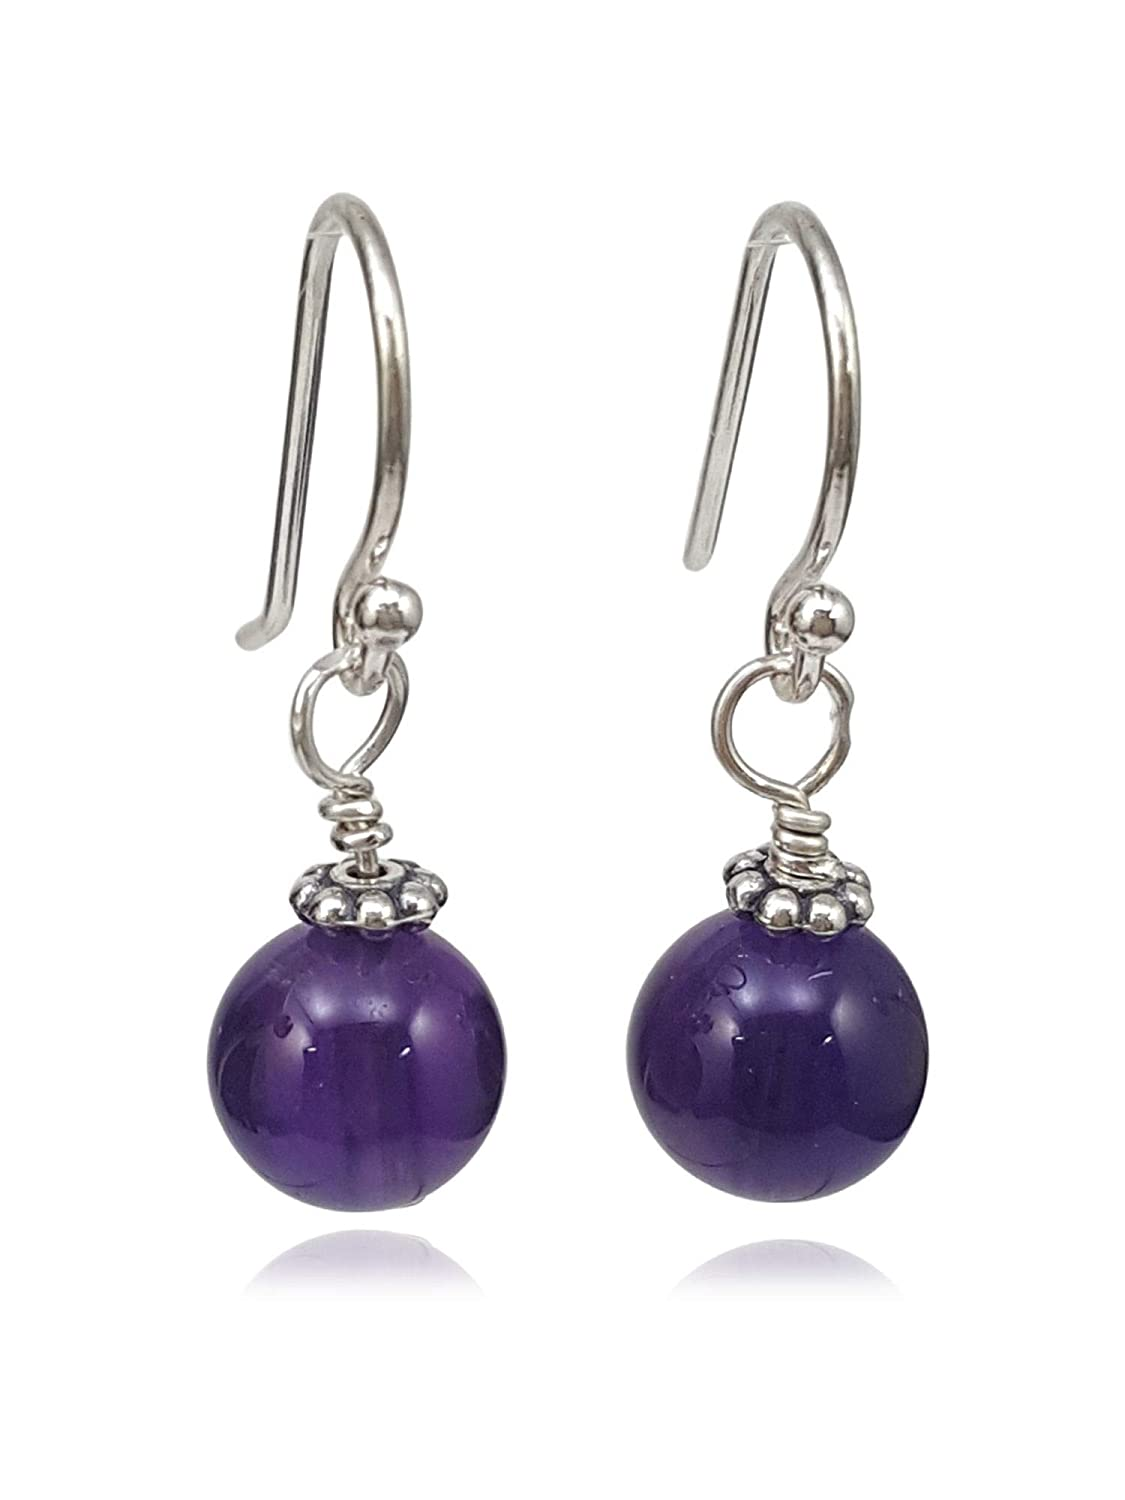 Amethyst Earrings Sterling Silver wire wrapped natural purple gemstones long dangle drops boho statement February birthstone gift her 6322